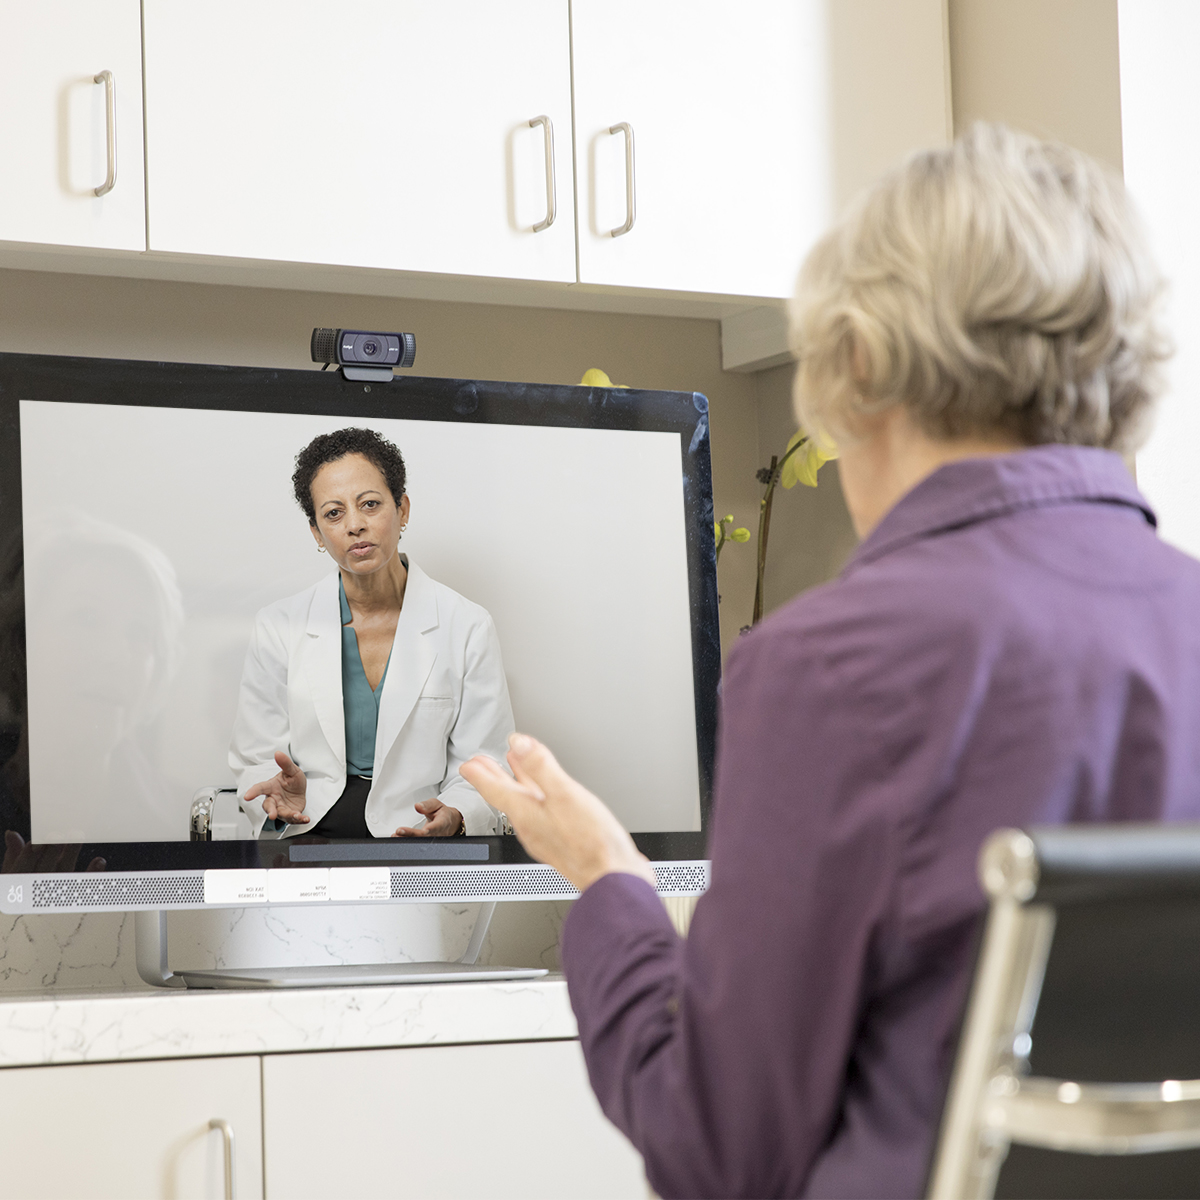 Woman using video chat to confer with doctor